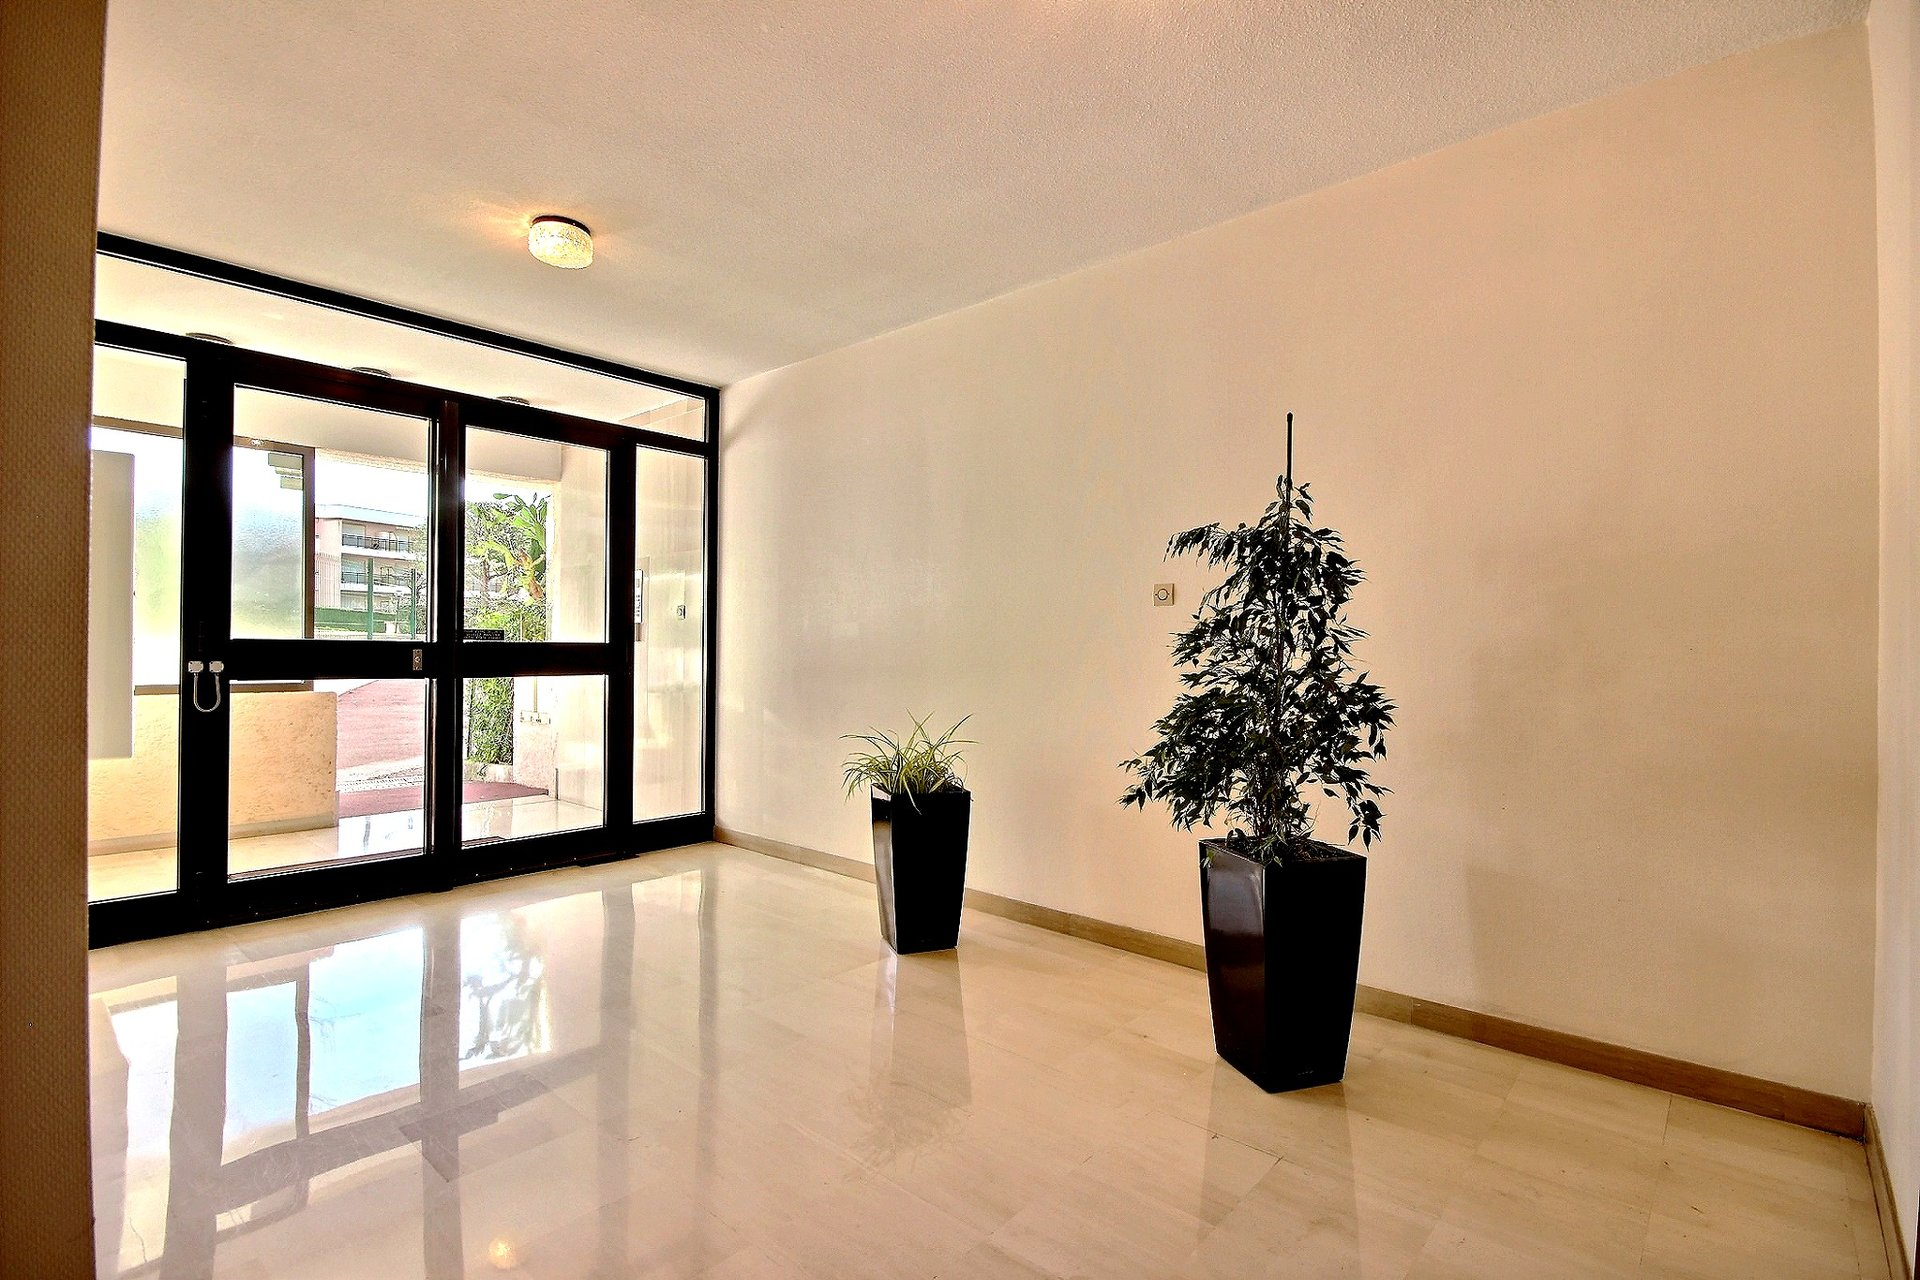 Property for sale in Juan les Pins with swimming pool